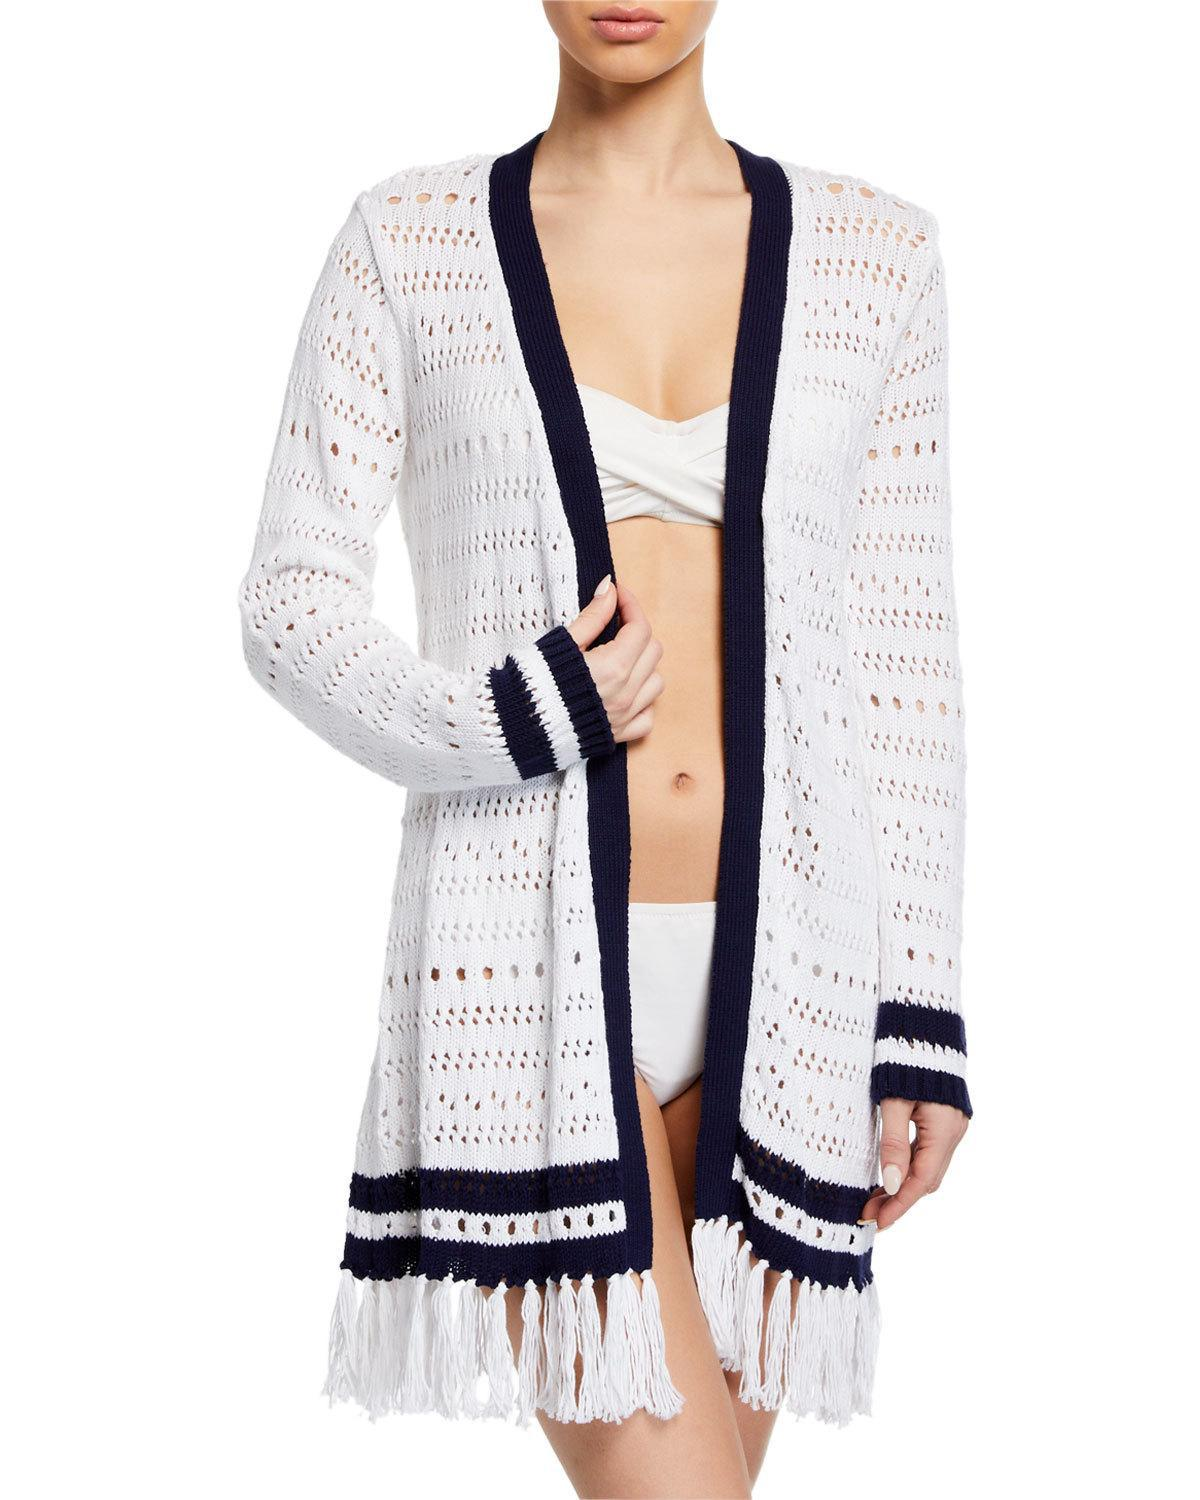 8ef20c0df0 Tommy Bahama - White Open-knit Long-sleeve Cardigan Sweater With Tassel Hem  -. View fullscreen